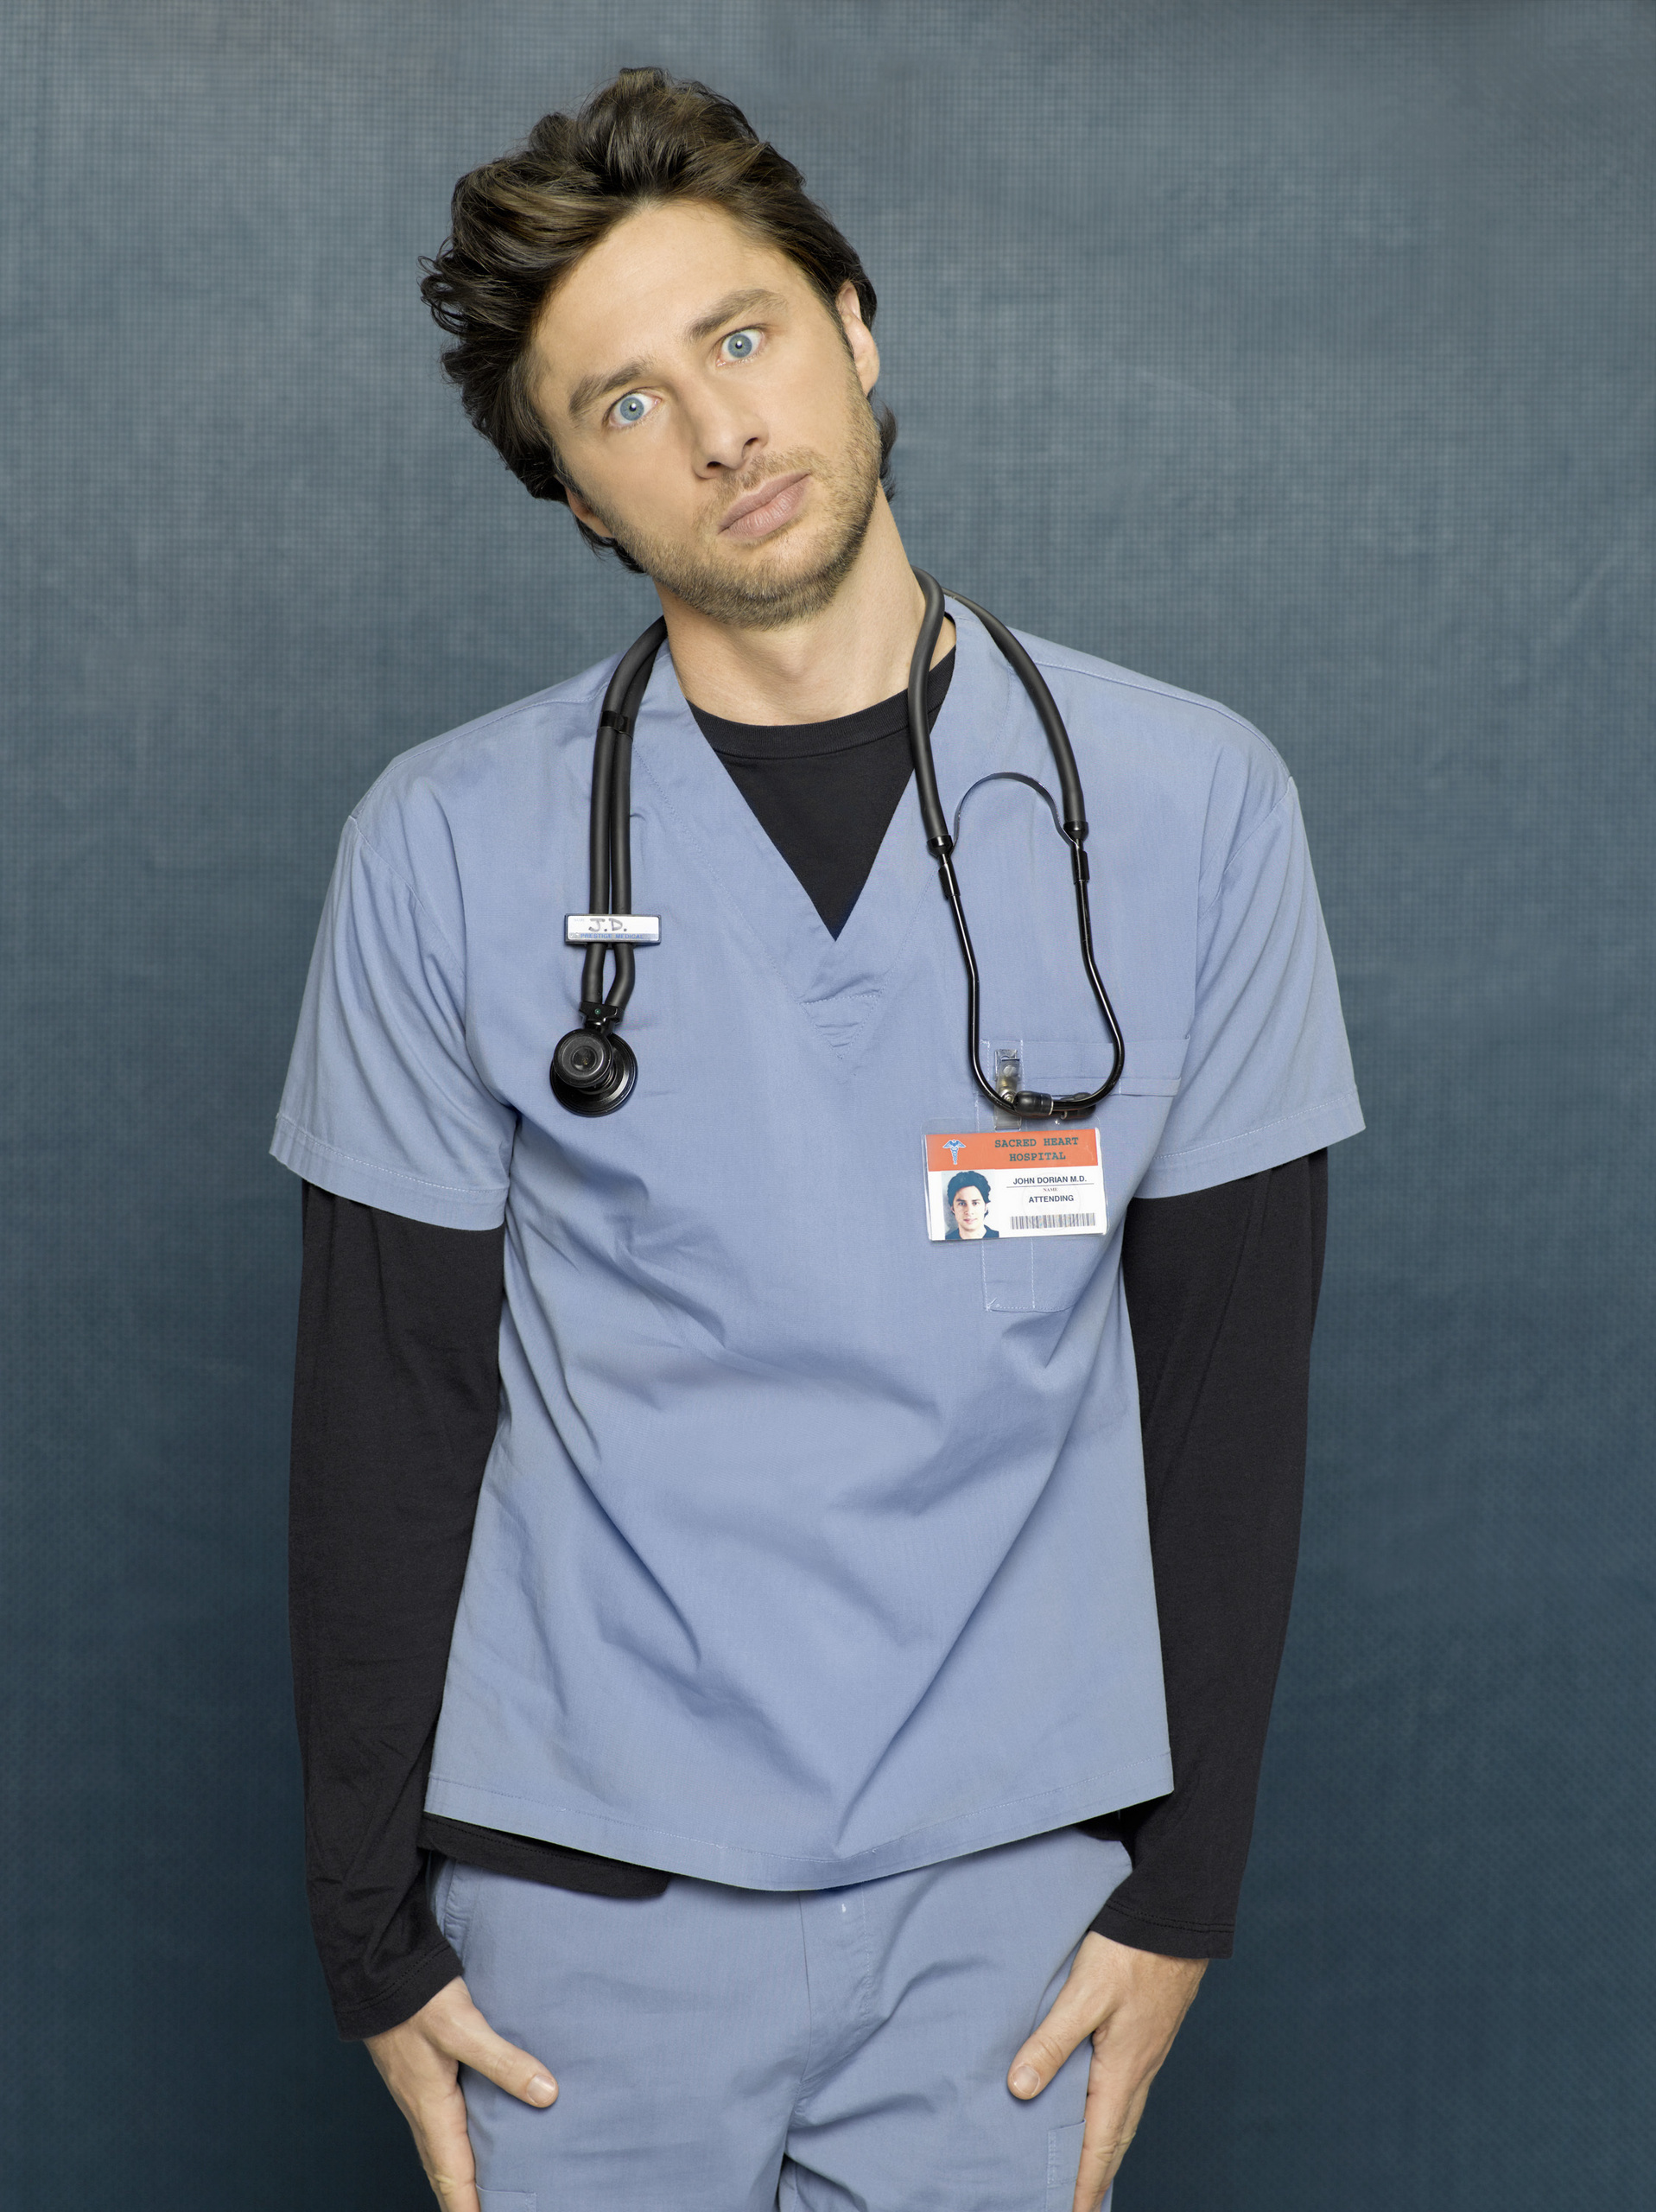 http://images2.fanpop.com/images/photos/2800000/Season-8-Promotional-Cast-Photos-scrubs-2889589-1917-2560.jpg